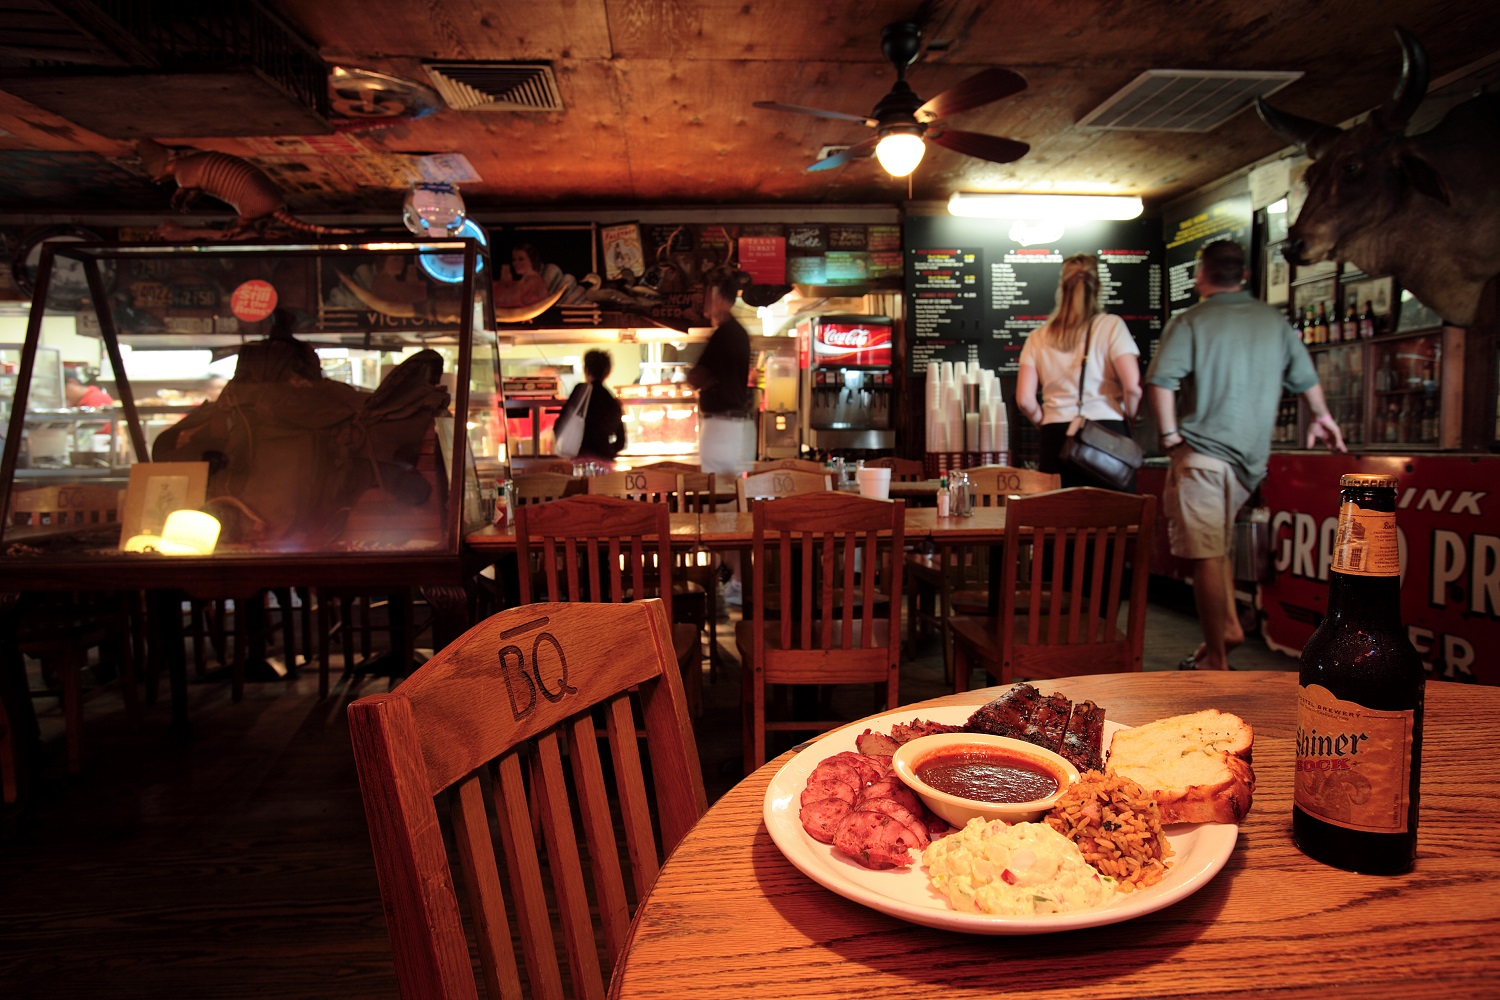 Interior of Goode Co. BBQ in Houston